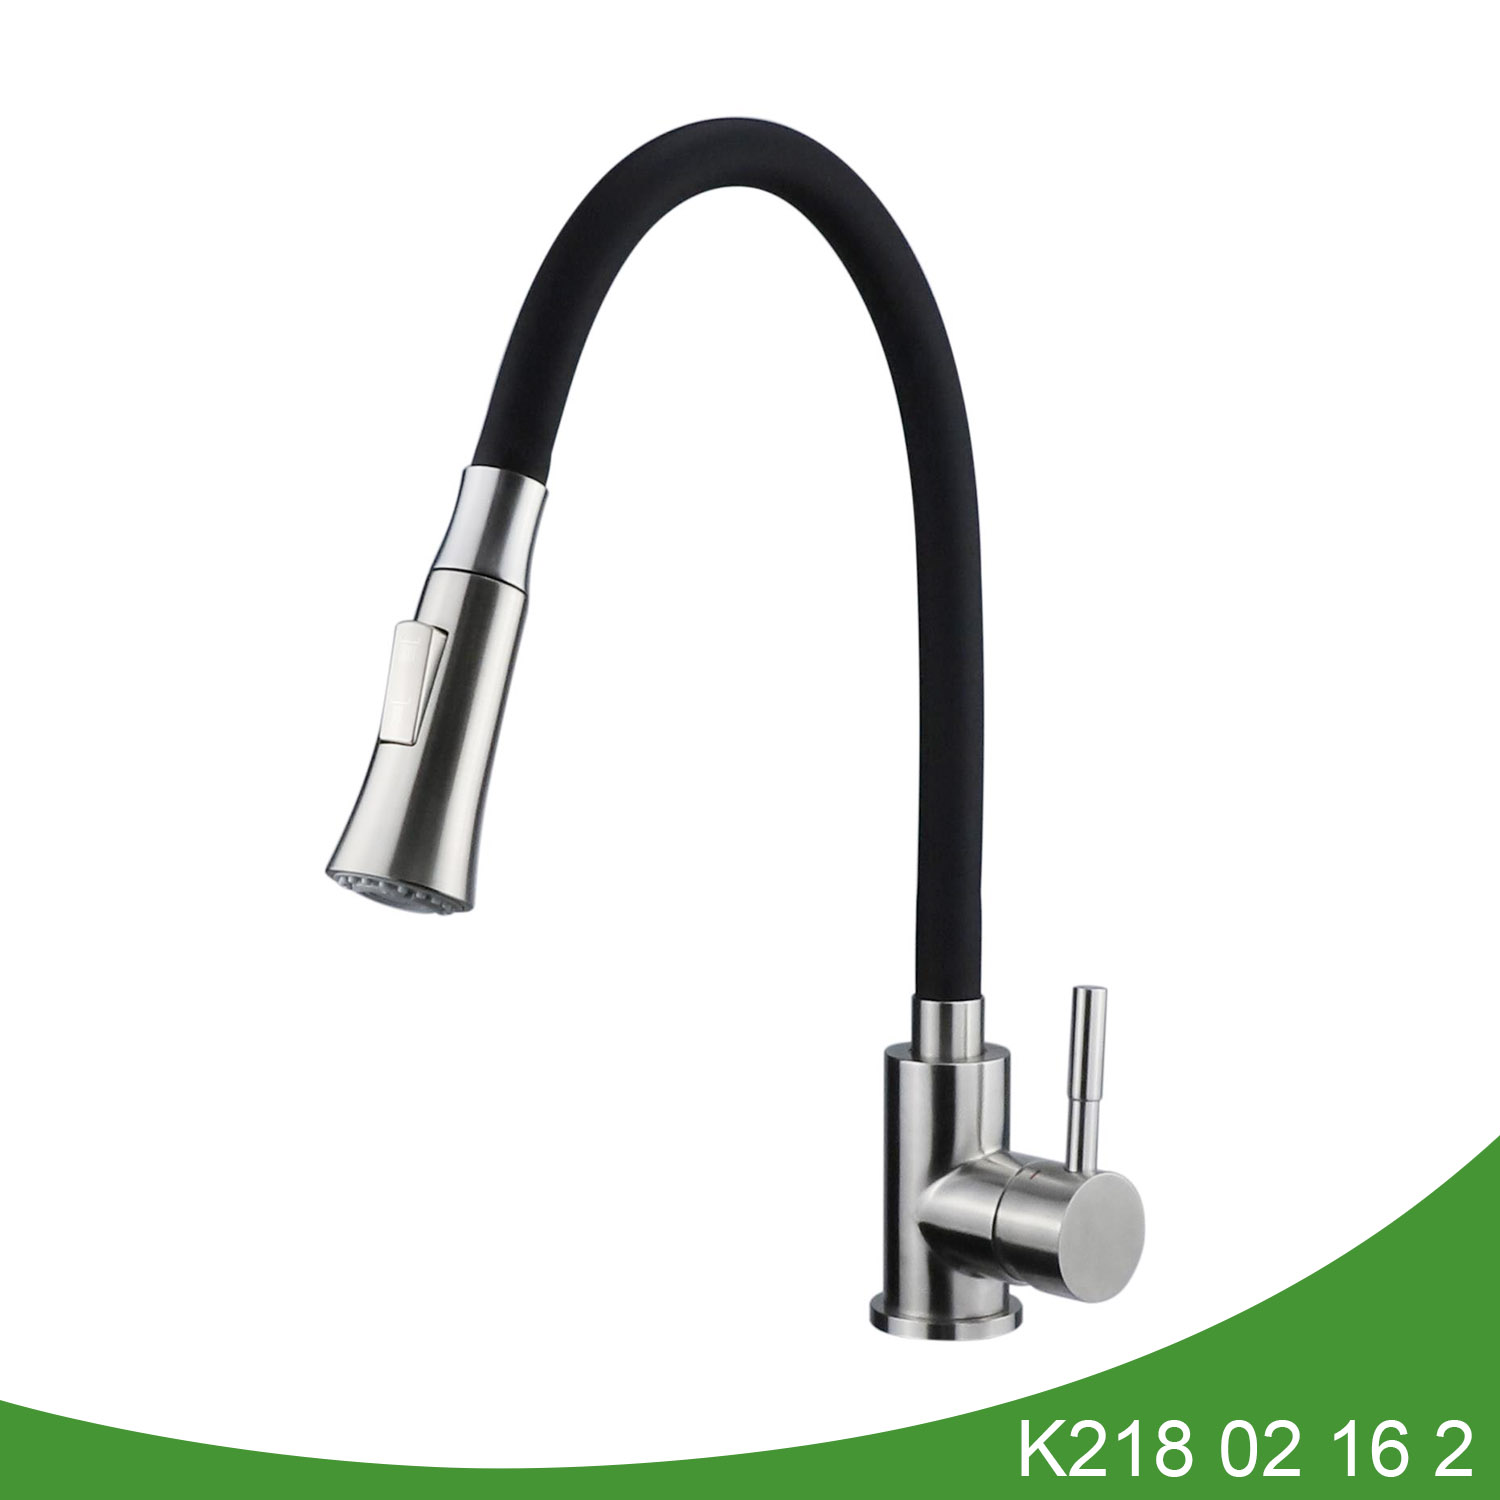 single hole pull down sink faucet K218 02 16 2